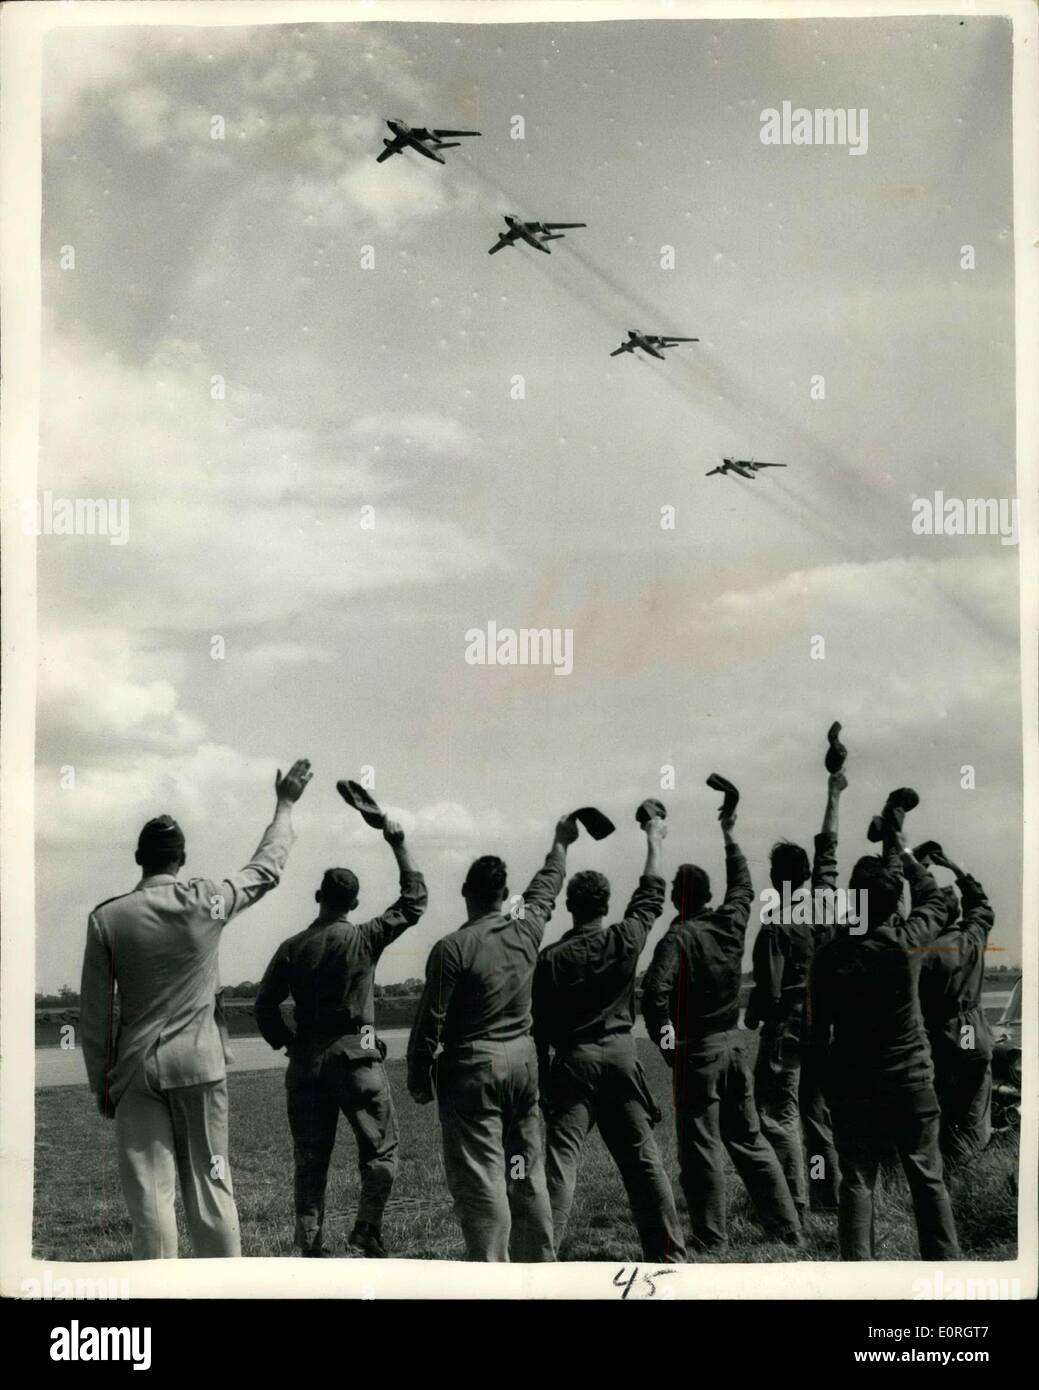 Aug. 15, 1959 - Switch Starts ''Invasion'' of US Air Force Squadrons to England. First moves have begun today in the reshaping of the United States Air Force tactical squadrons in Europe, following General de Gaulle's refusal to allow the Americans to store nuclear weapons in France. Squadron of tactical fighter bombers are being switched from airfields in France to Germany, while aircraft with longer range are being moved back to Britain - Stock Image